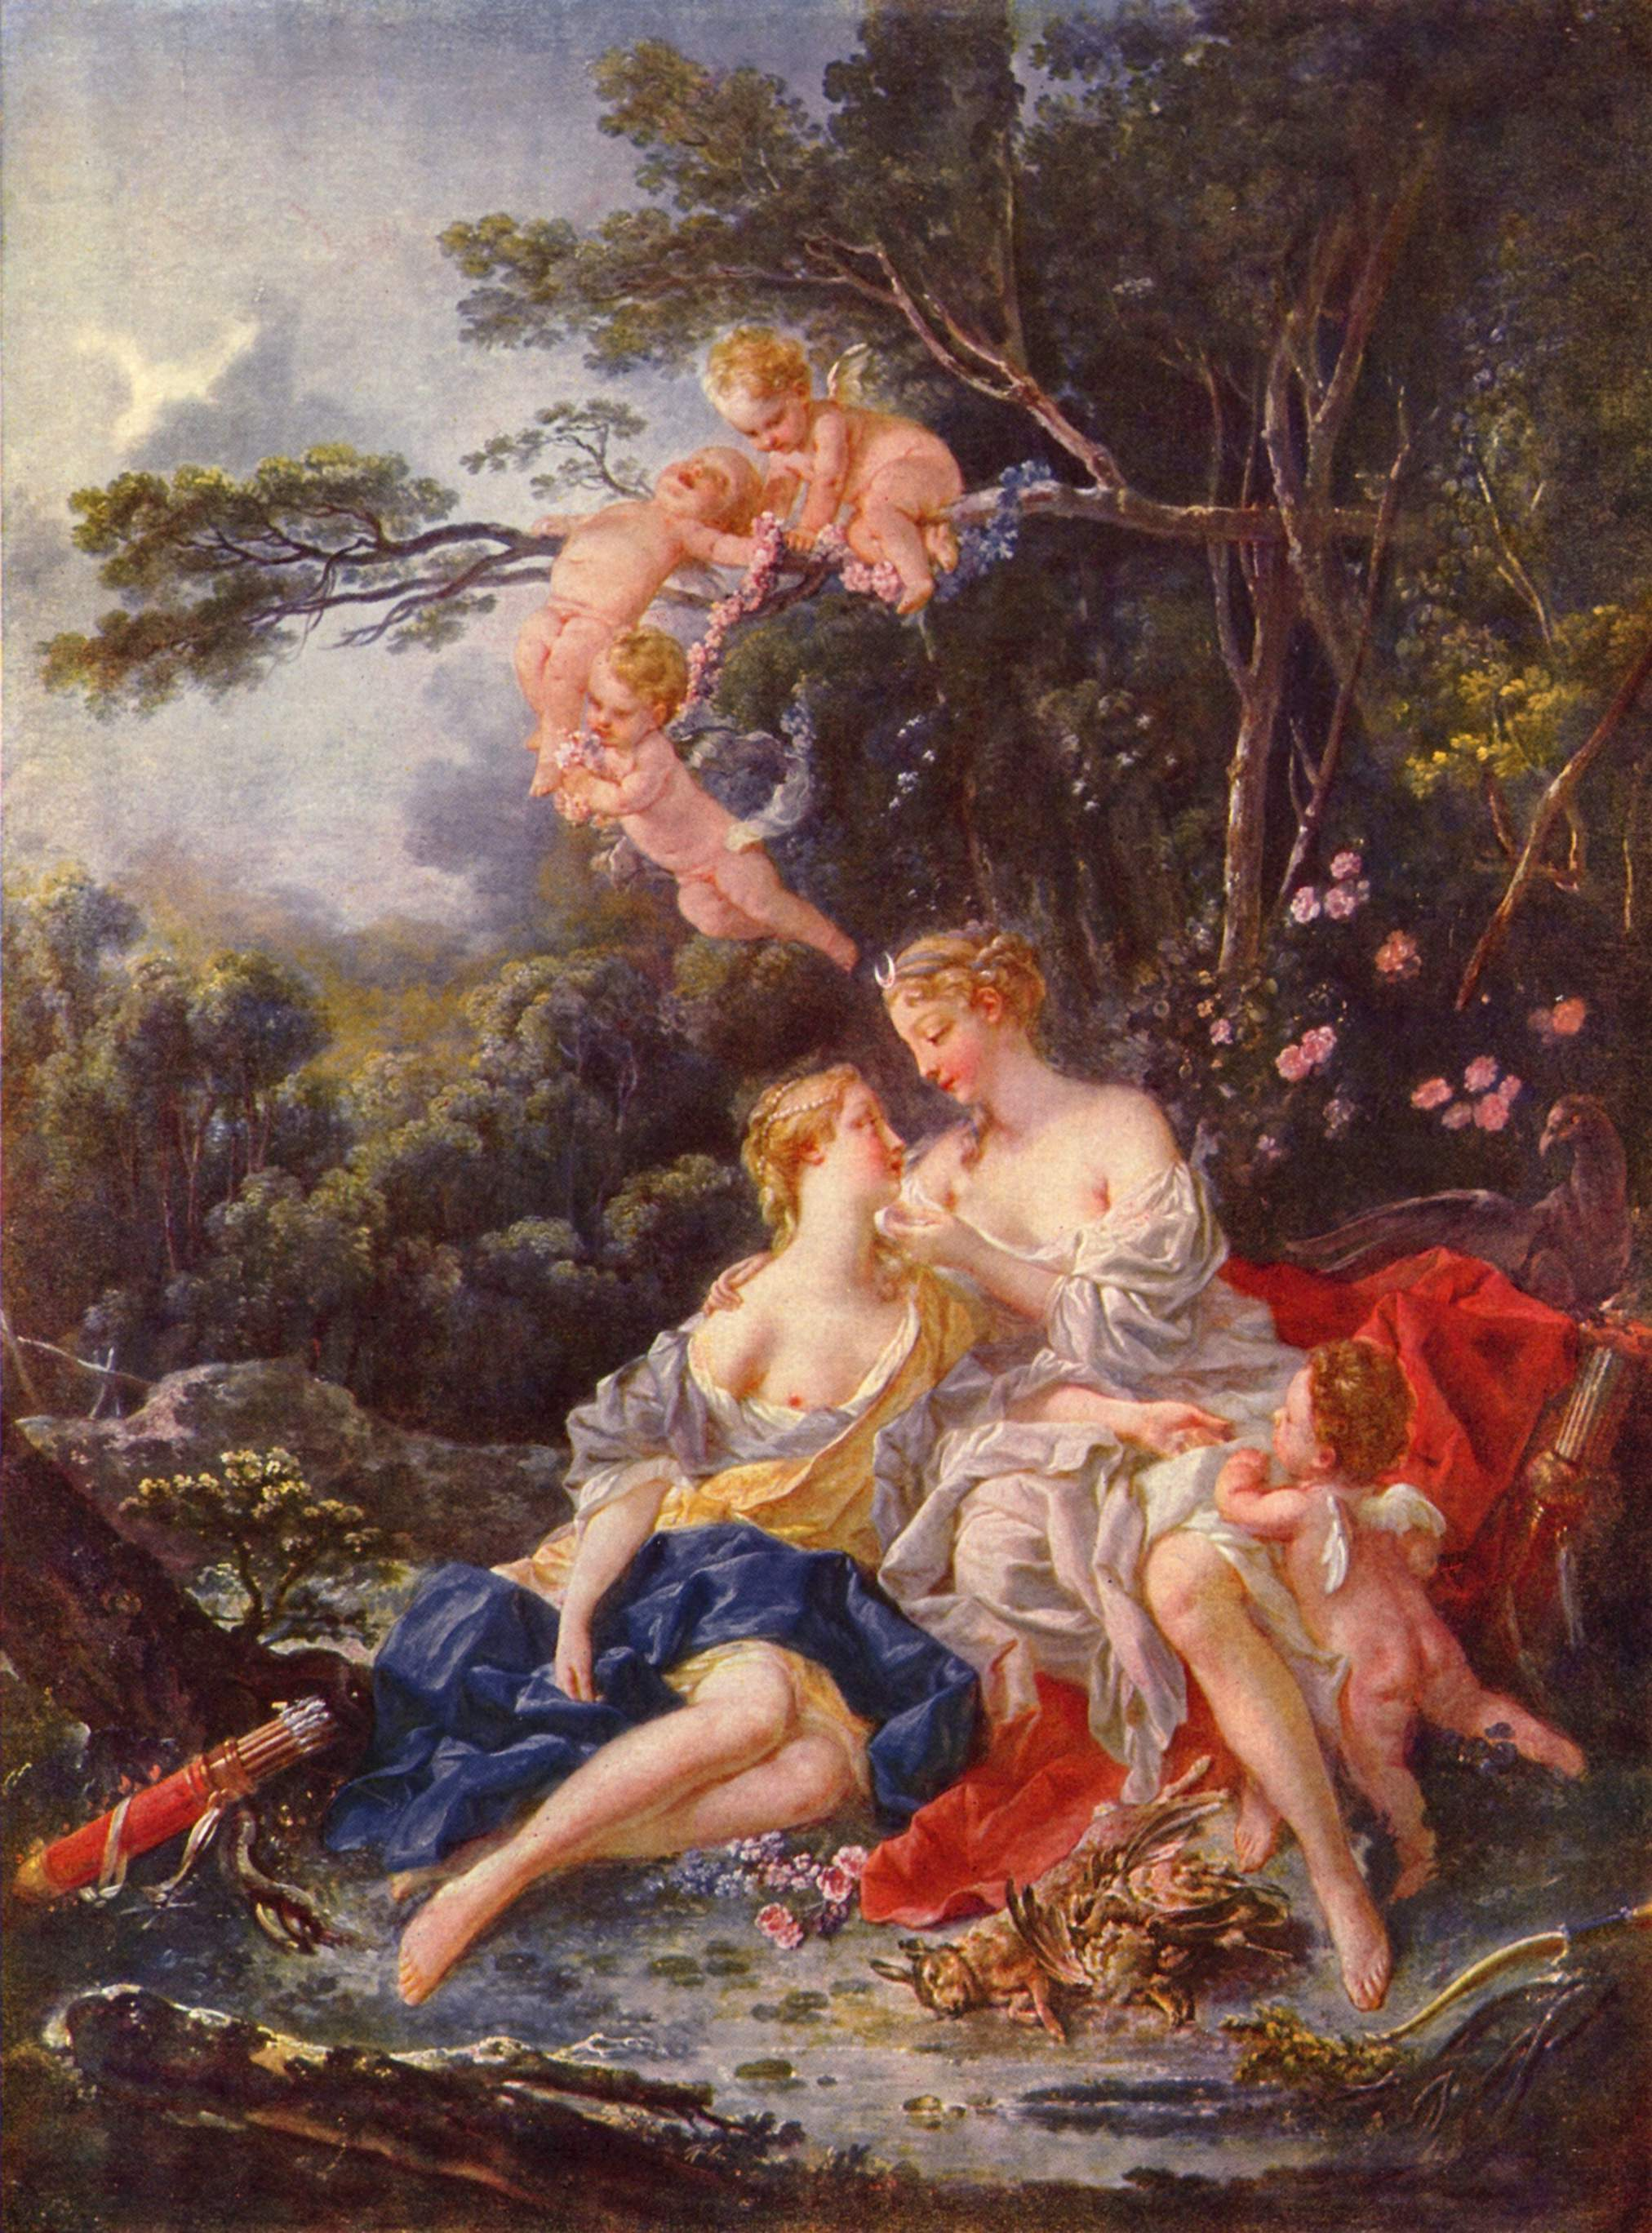 http://upload.wikimedia.org/wikipedia/commons/6/69/Fran%C3%A7ois_Boucher_012.jpg